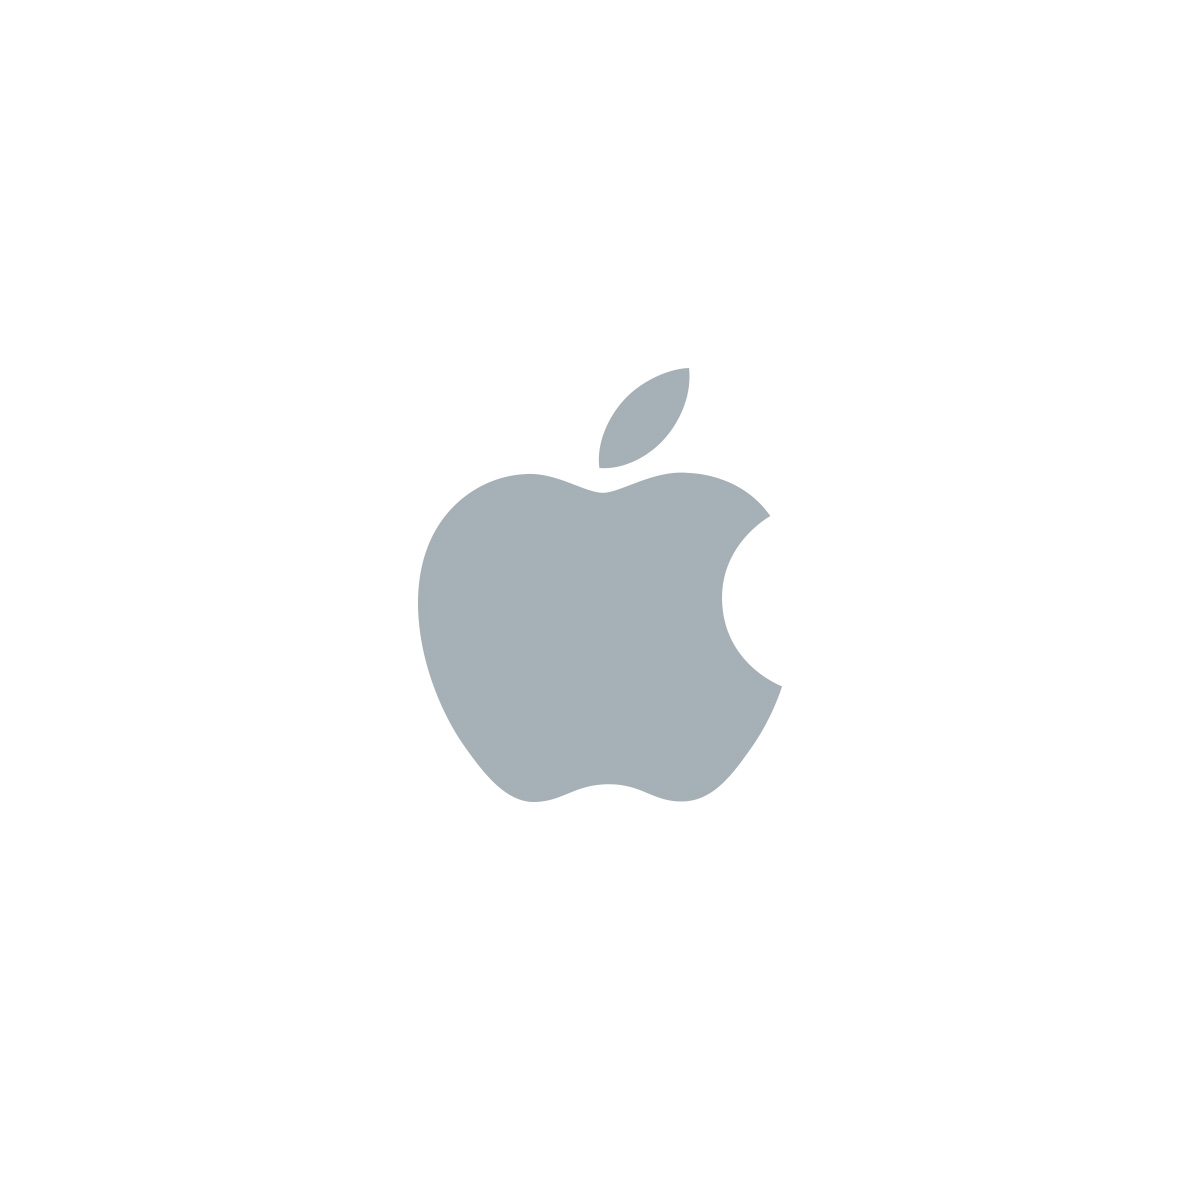 How to Contact Us - Apple (CA)